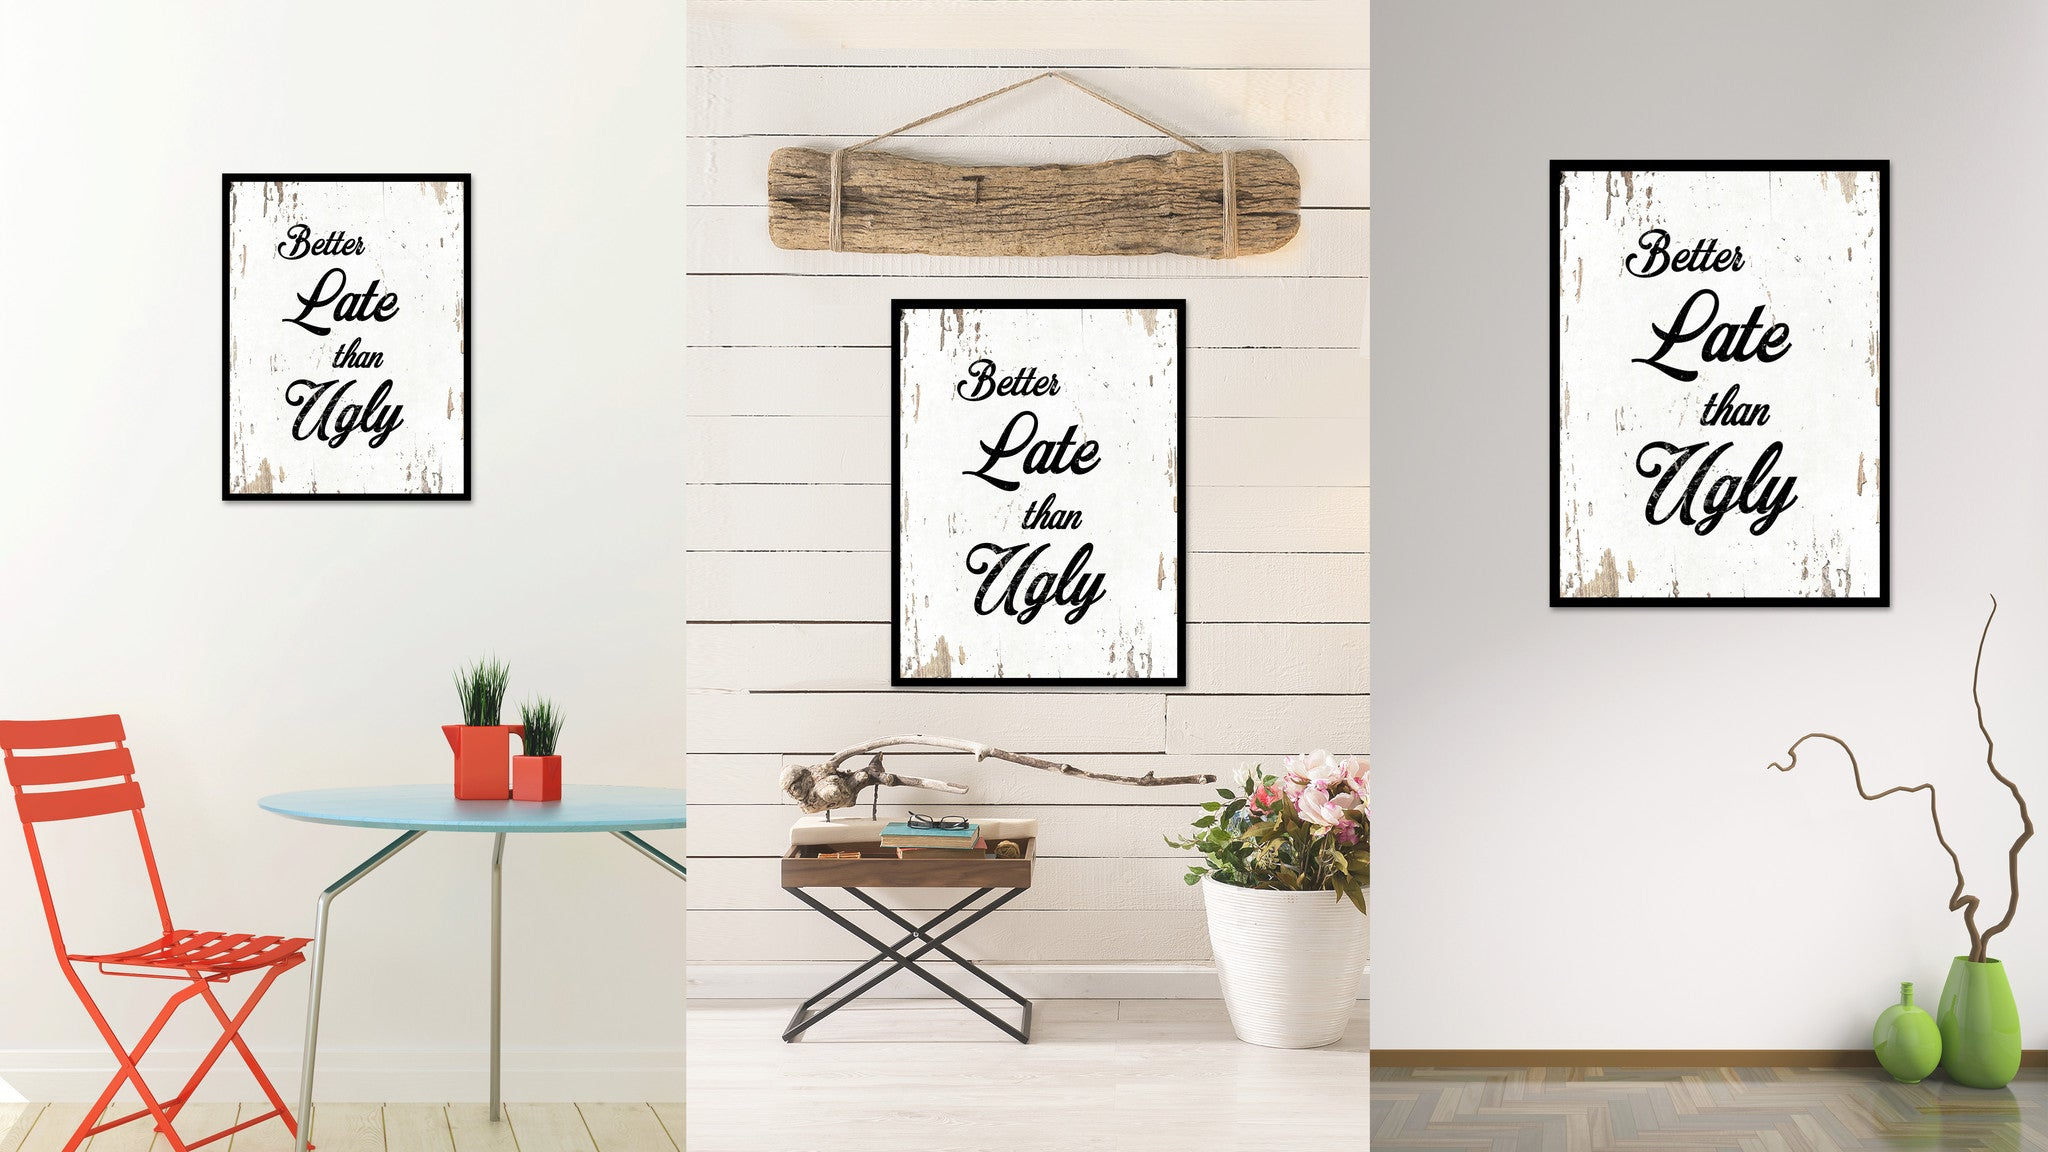 Better Late Than Ugly Motivation Quote Saying Home Decor Wall Art Gift Ideas 111700